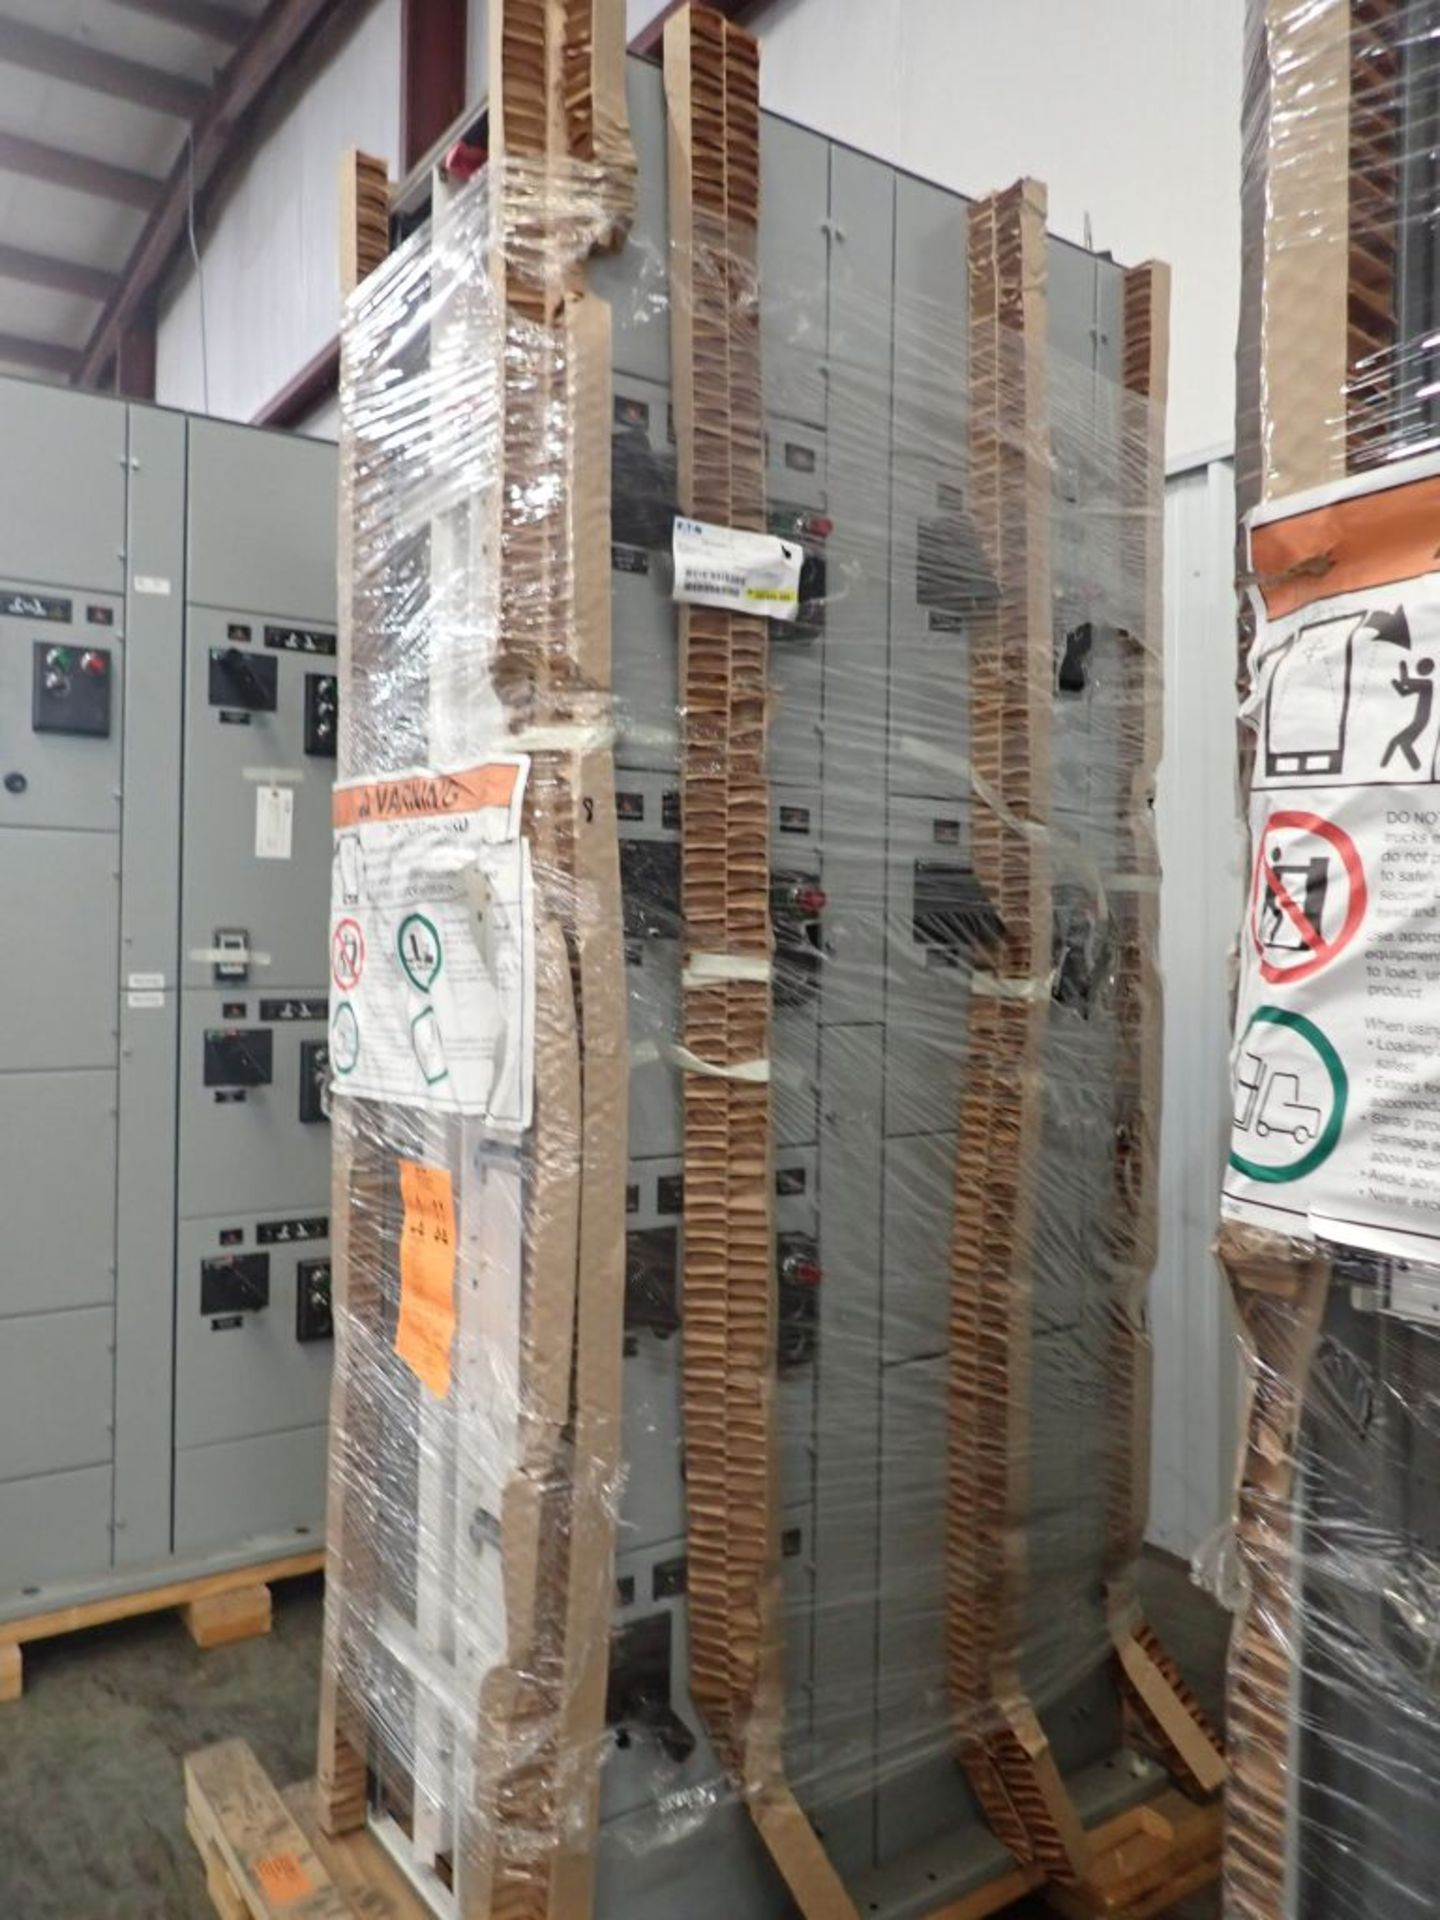 Eaton Freedom 2100 Series Motor Control Center | (2) F206-7A-10HP; (3) F206-15A-10HP; (1) FDRB-100A; - Image 5 of 87